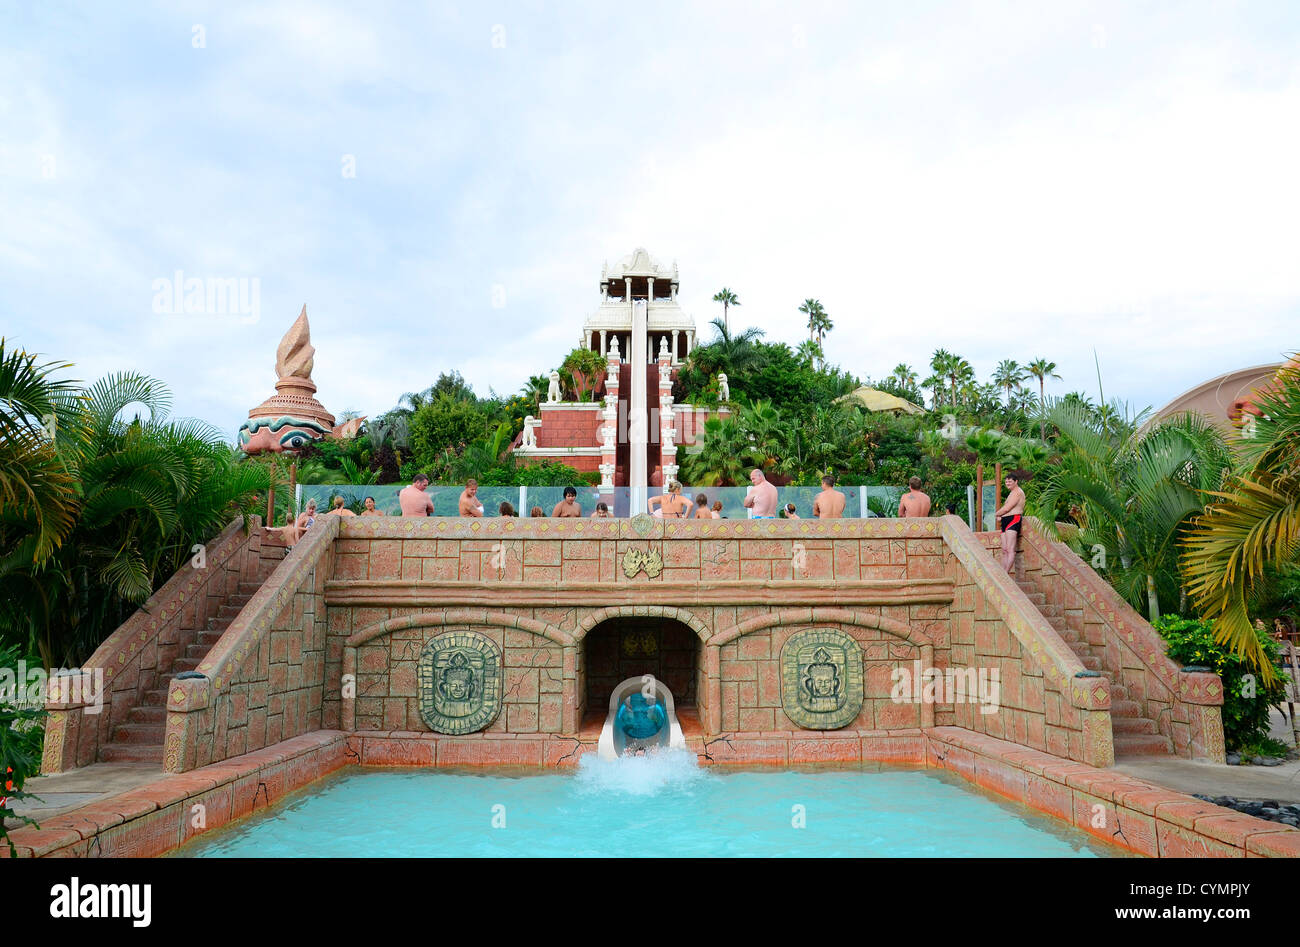 The ' Tower of Power ' water slide at Siam Park on the Costa Adeje in Tenerife, Canary Islands - Stock Image